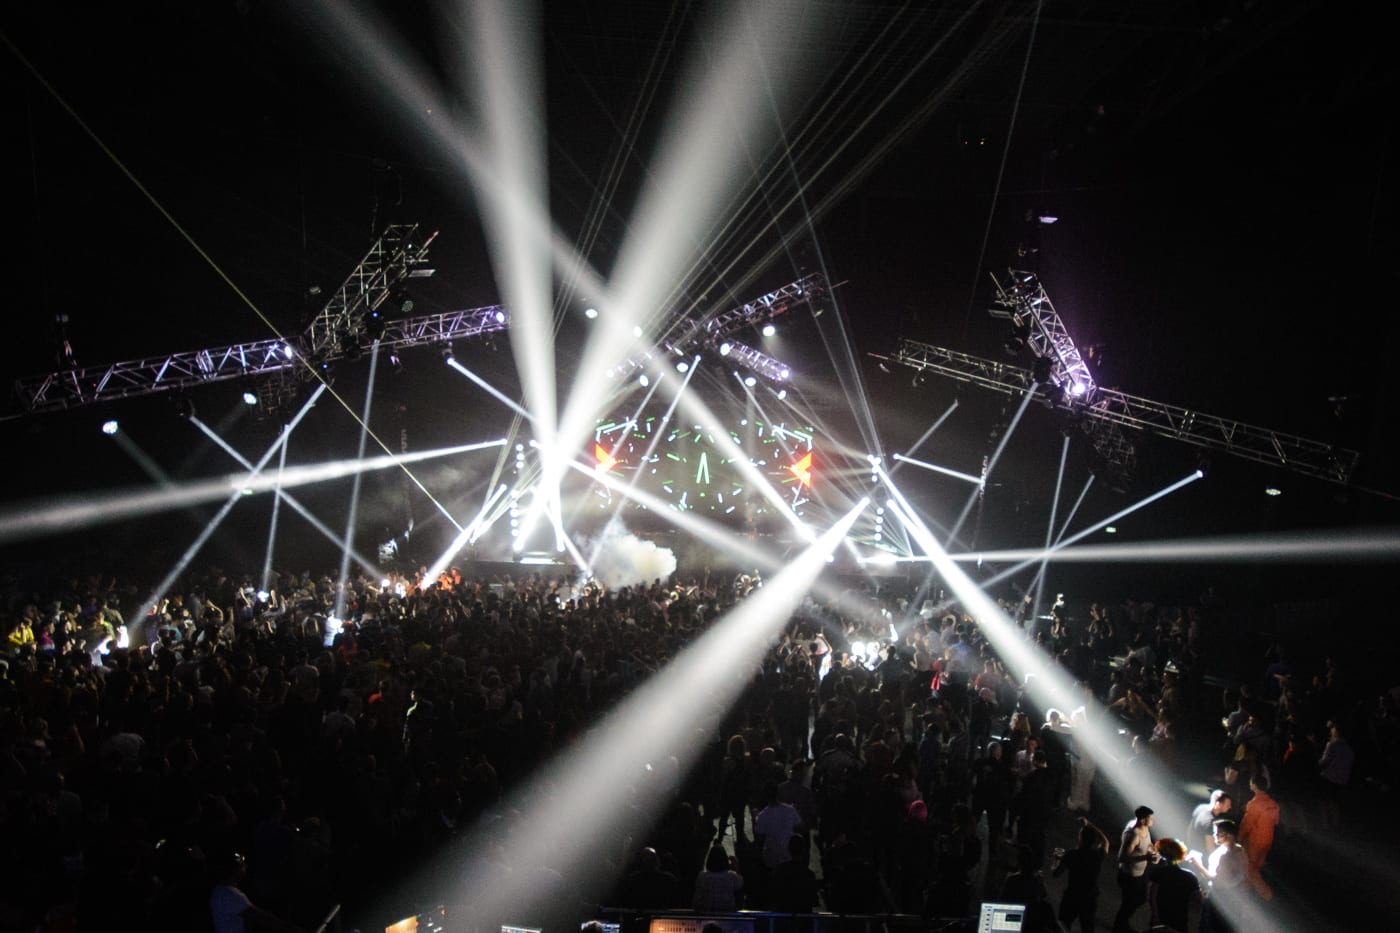 winterparty-at-3arena-dublin-30-10-2016-by-sean-smyth-19-of-53